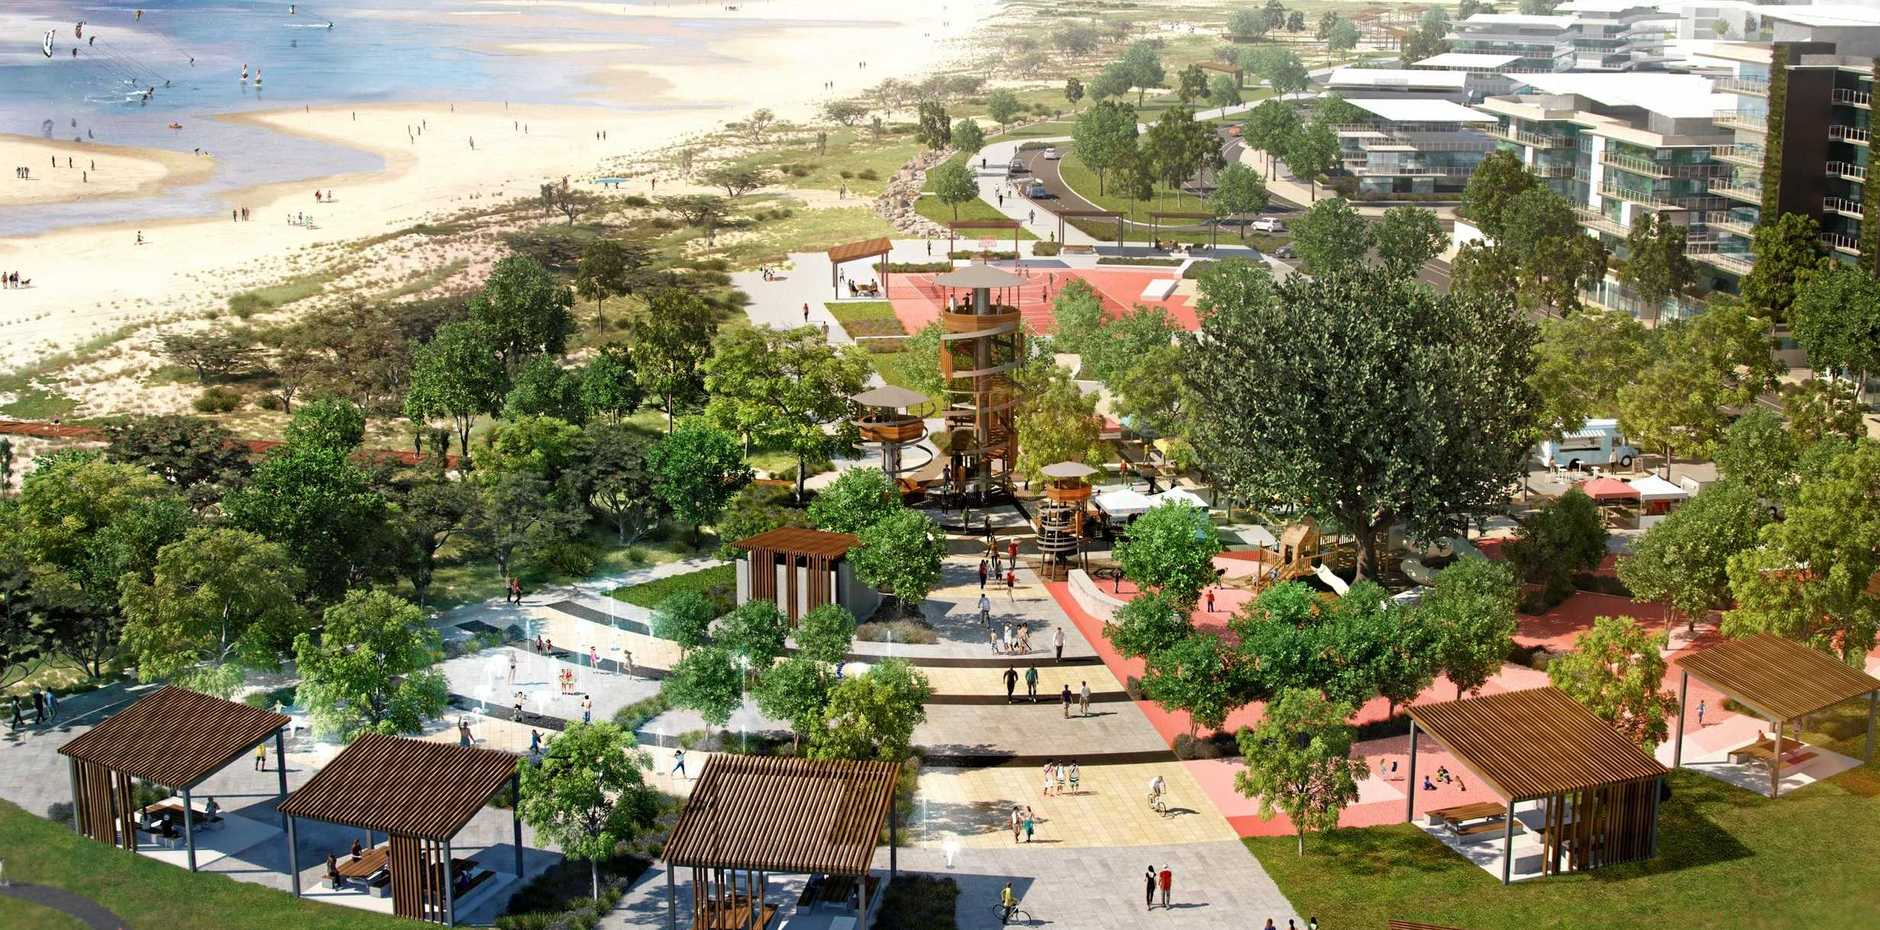 An artist's impression of the public realm areas in precinct five of Mackay's Waterfront PDA.